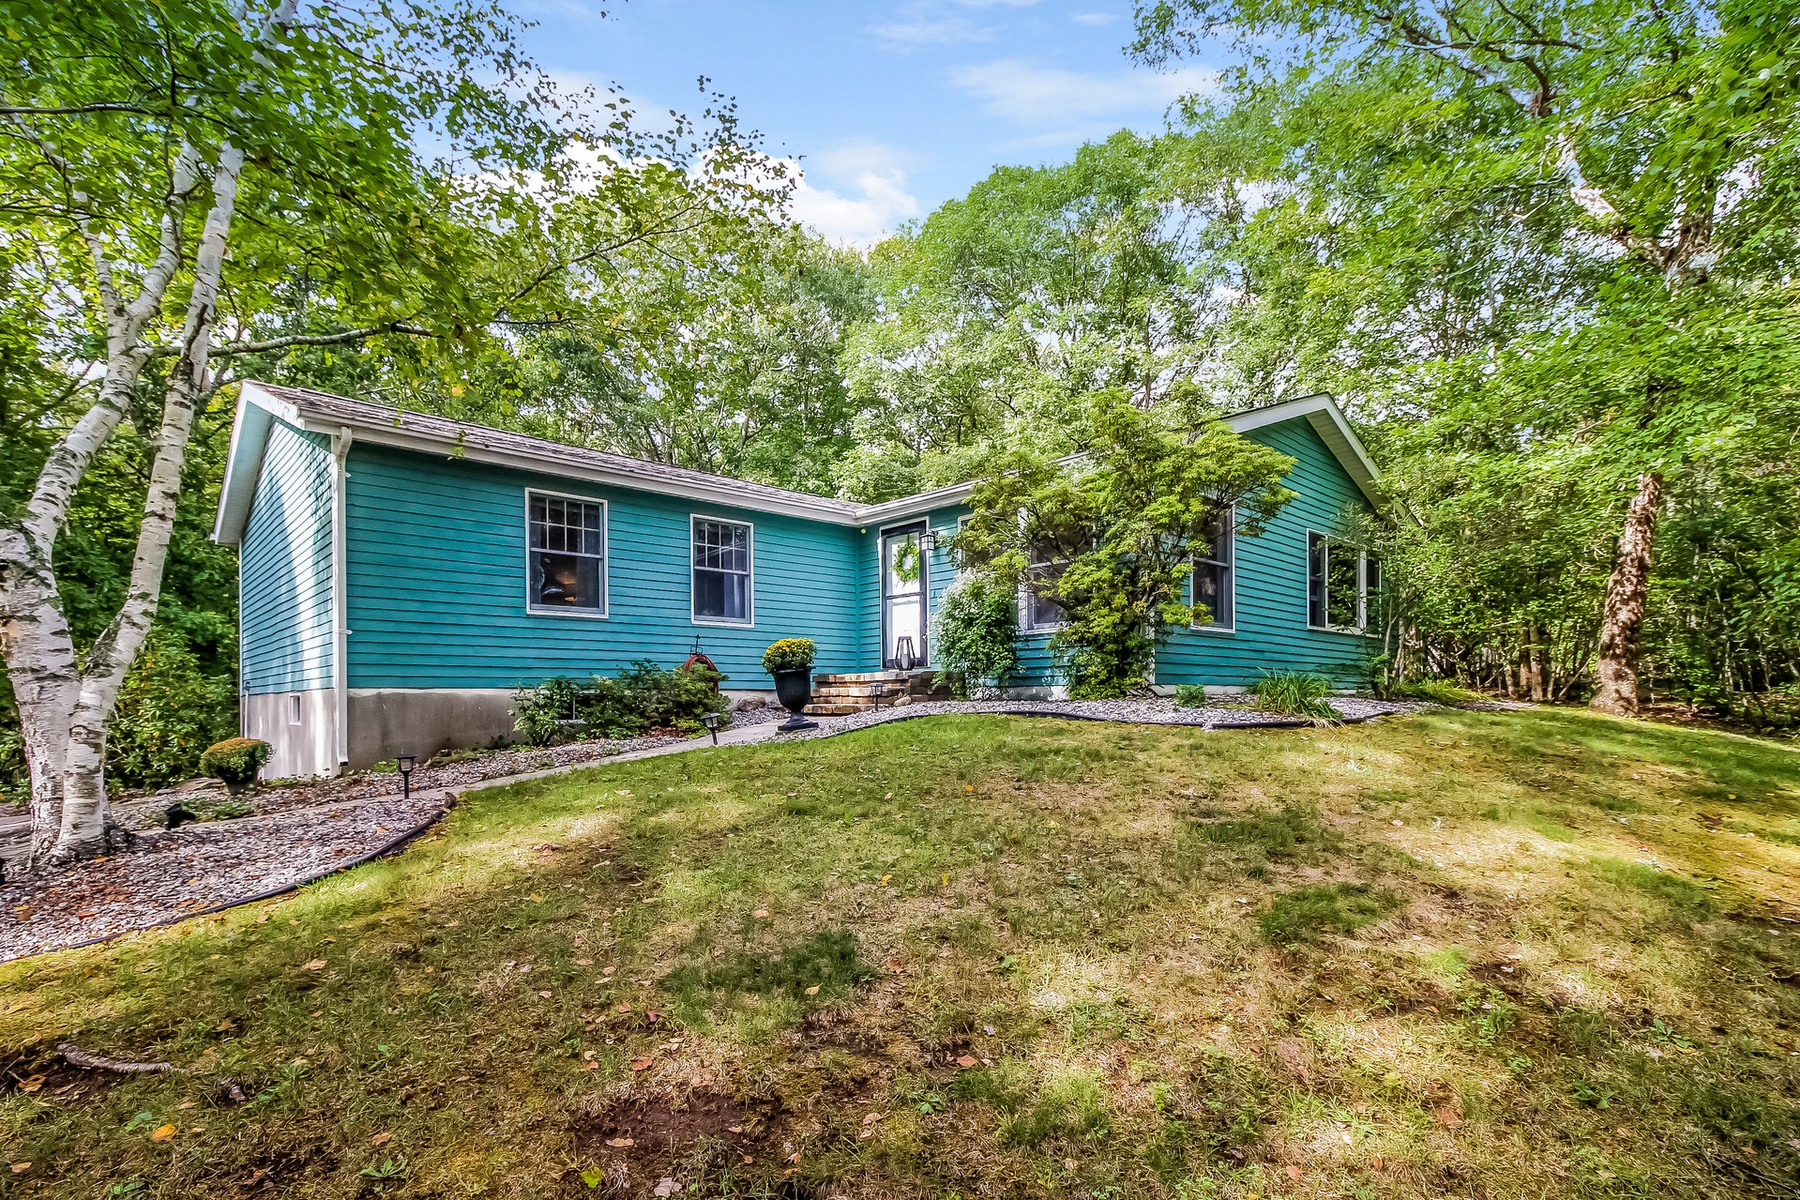 Single Family Home for Sale at Impeccably Remodeled 15 King James Dr East Lyme, Connecticut, 06333 United States